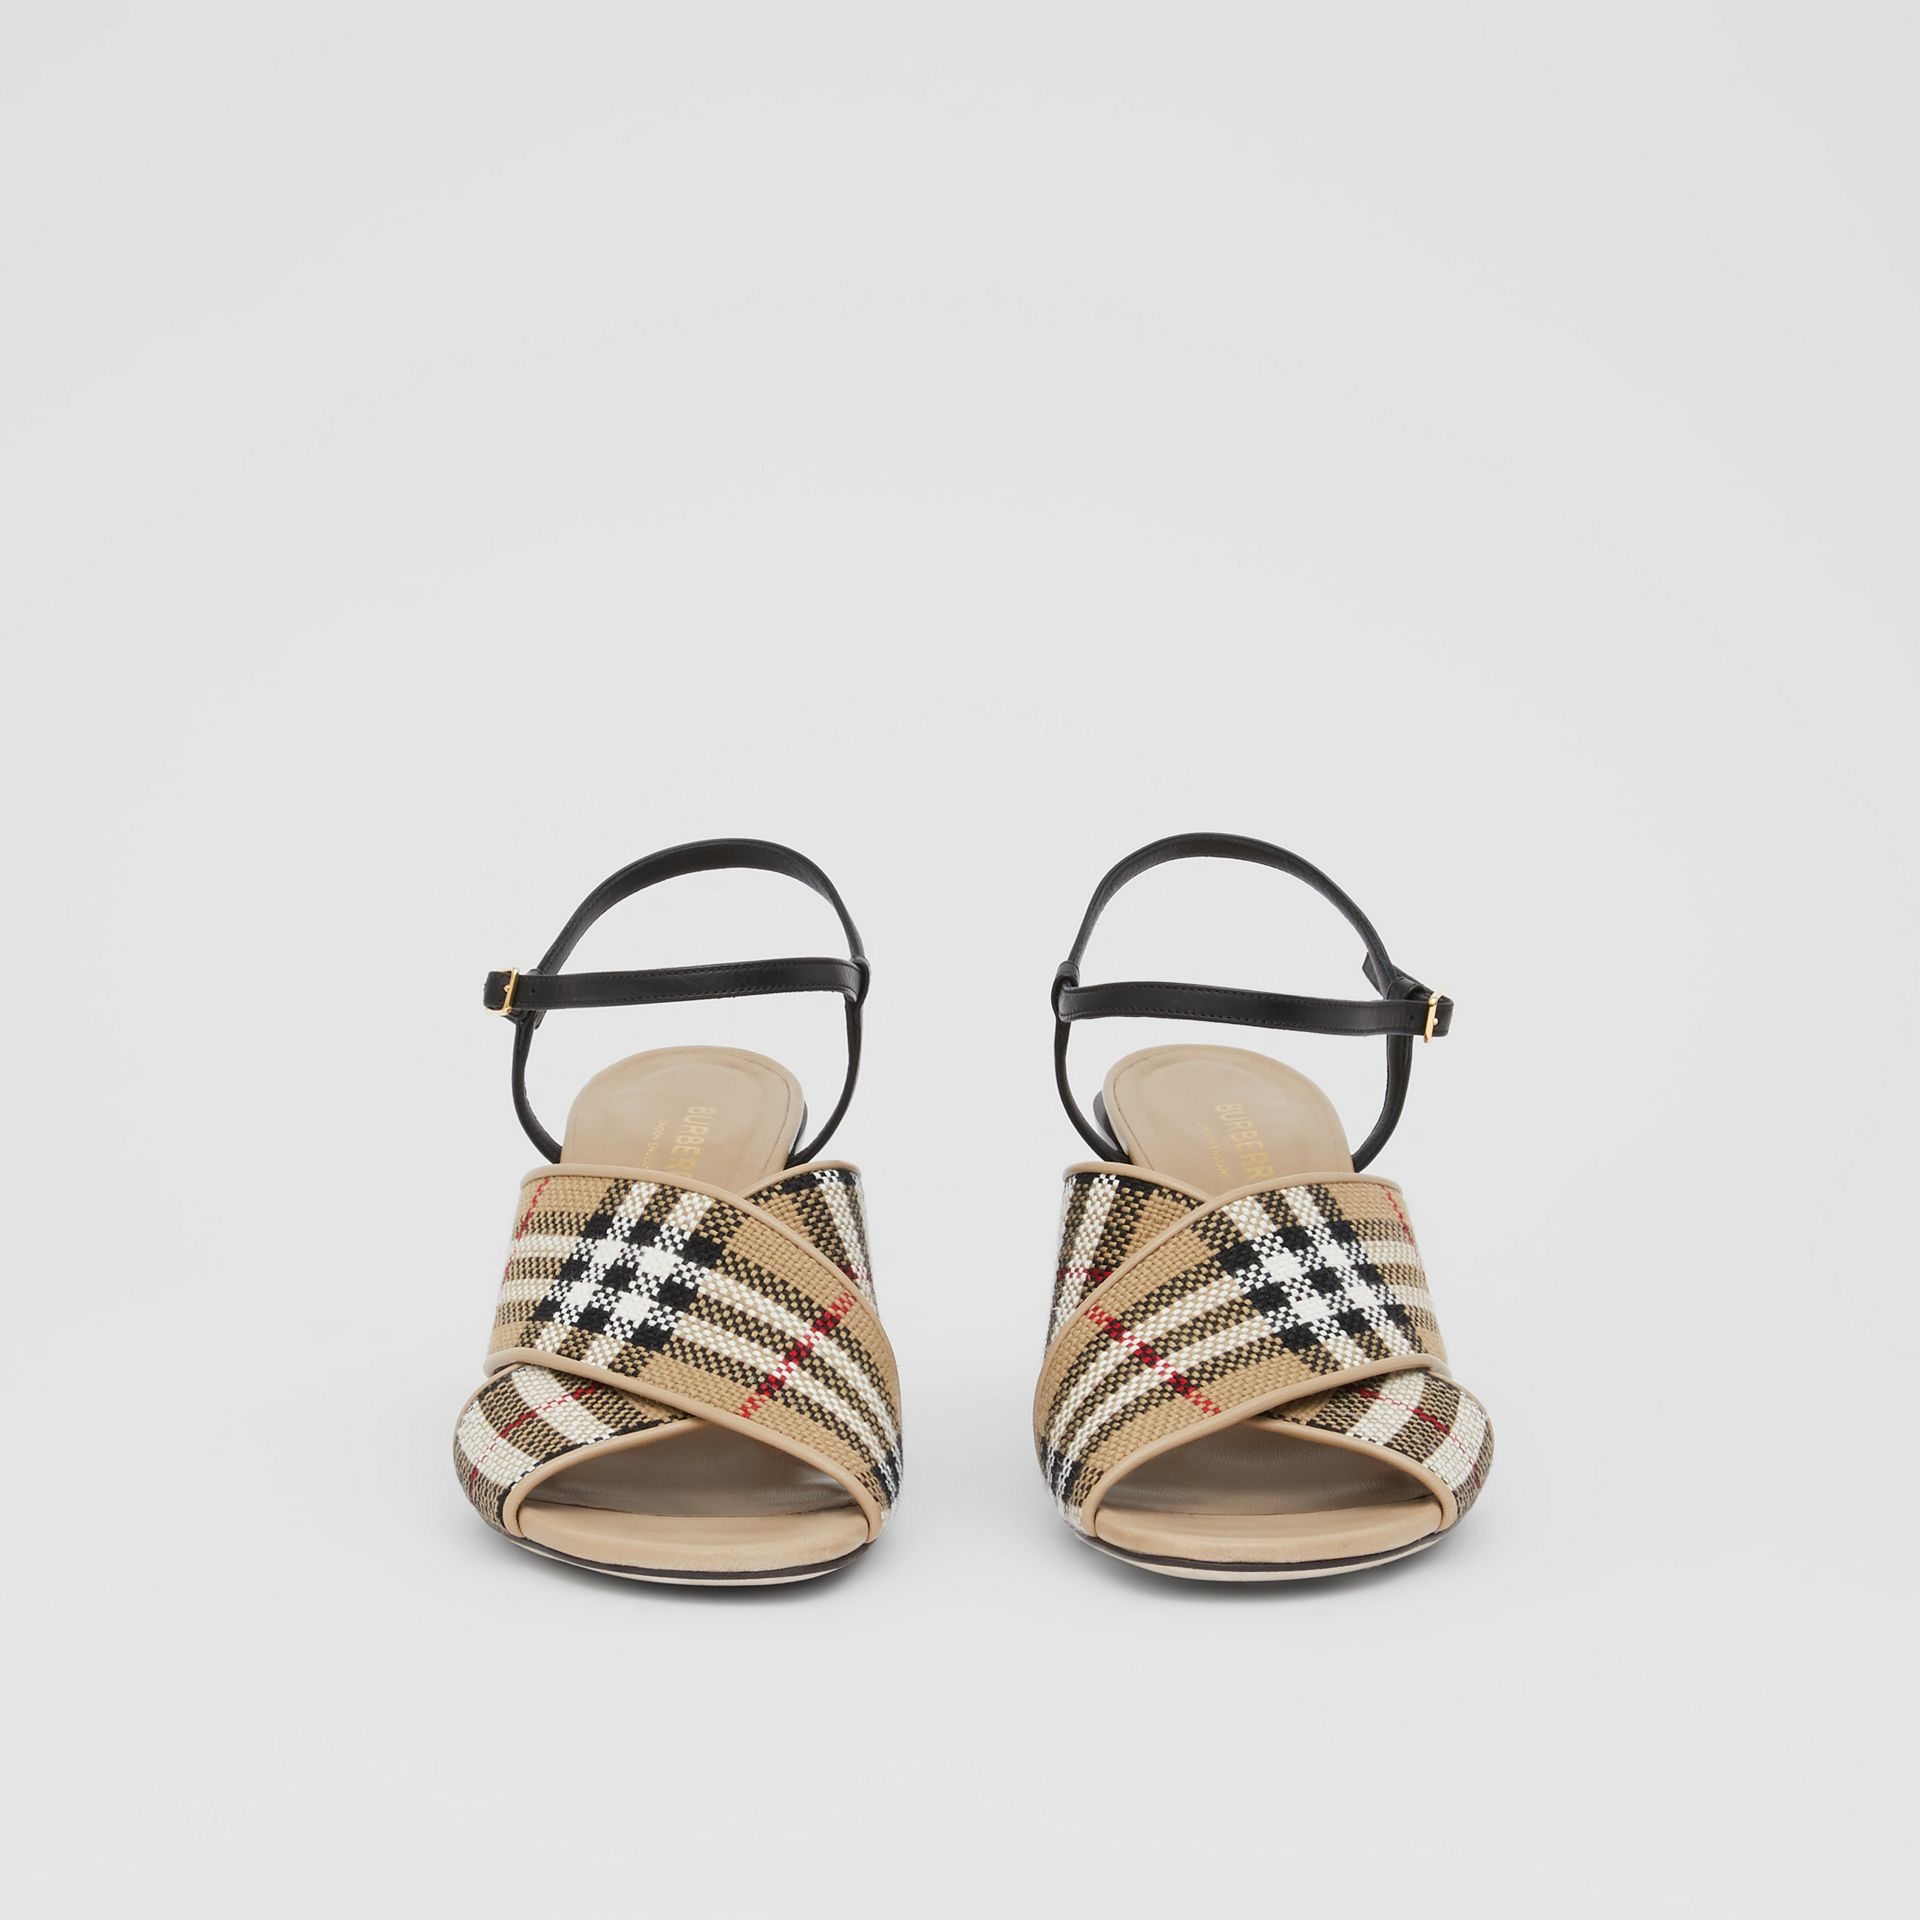 Latticed Cotton and Leather Block-heel Sandals in Archive Beige/black - Women | Burberry United Kingdom - gallery image 3